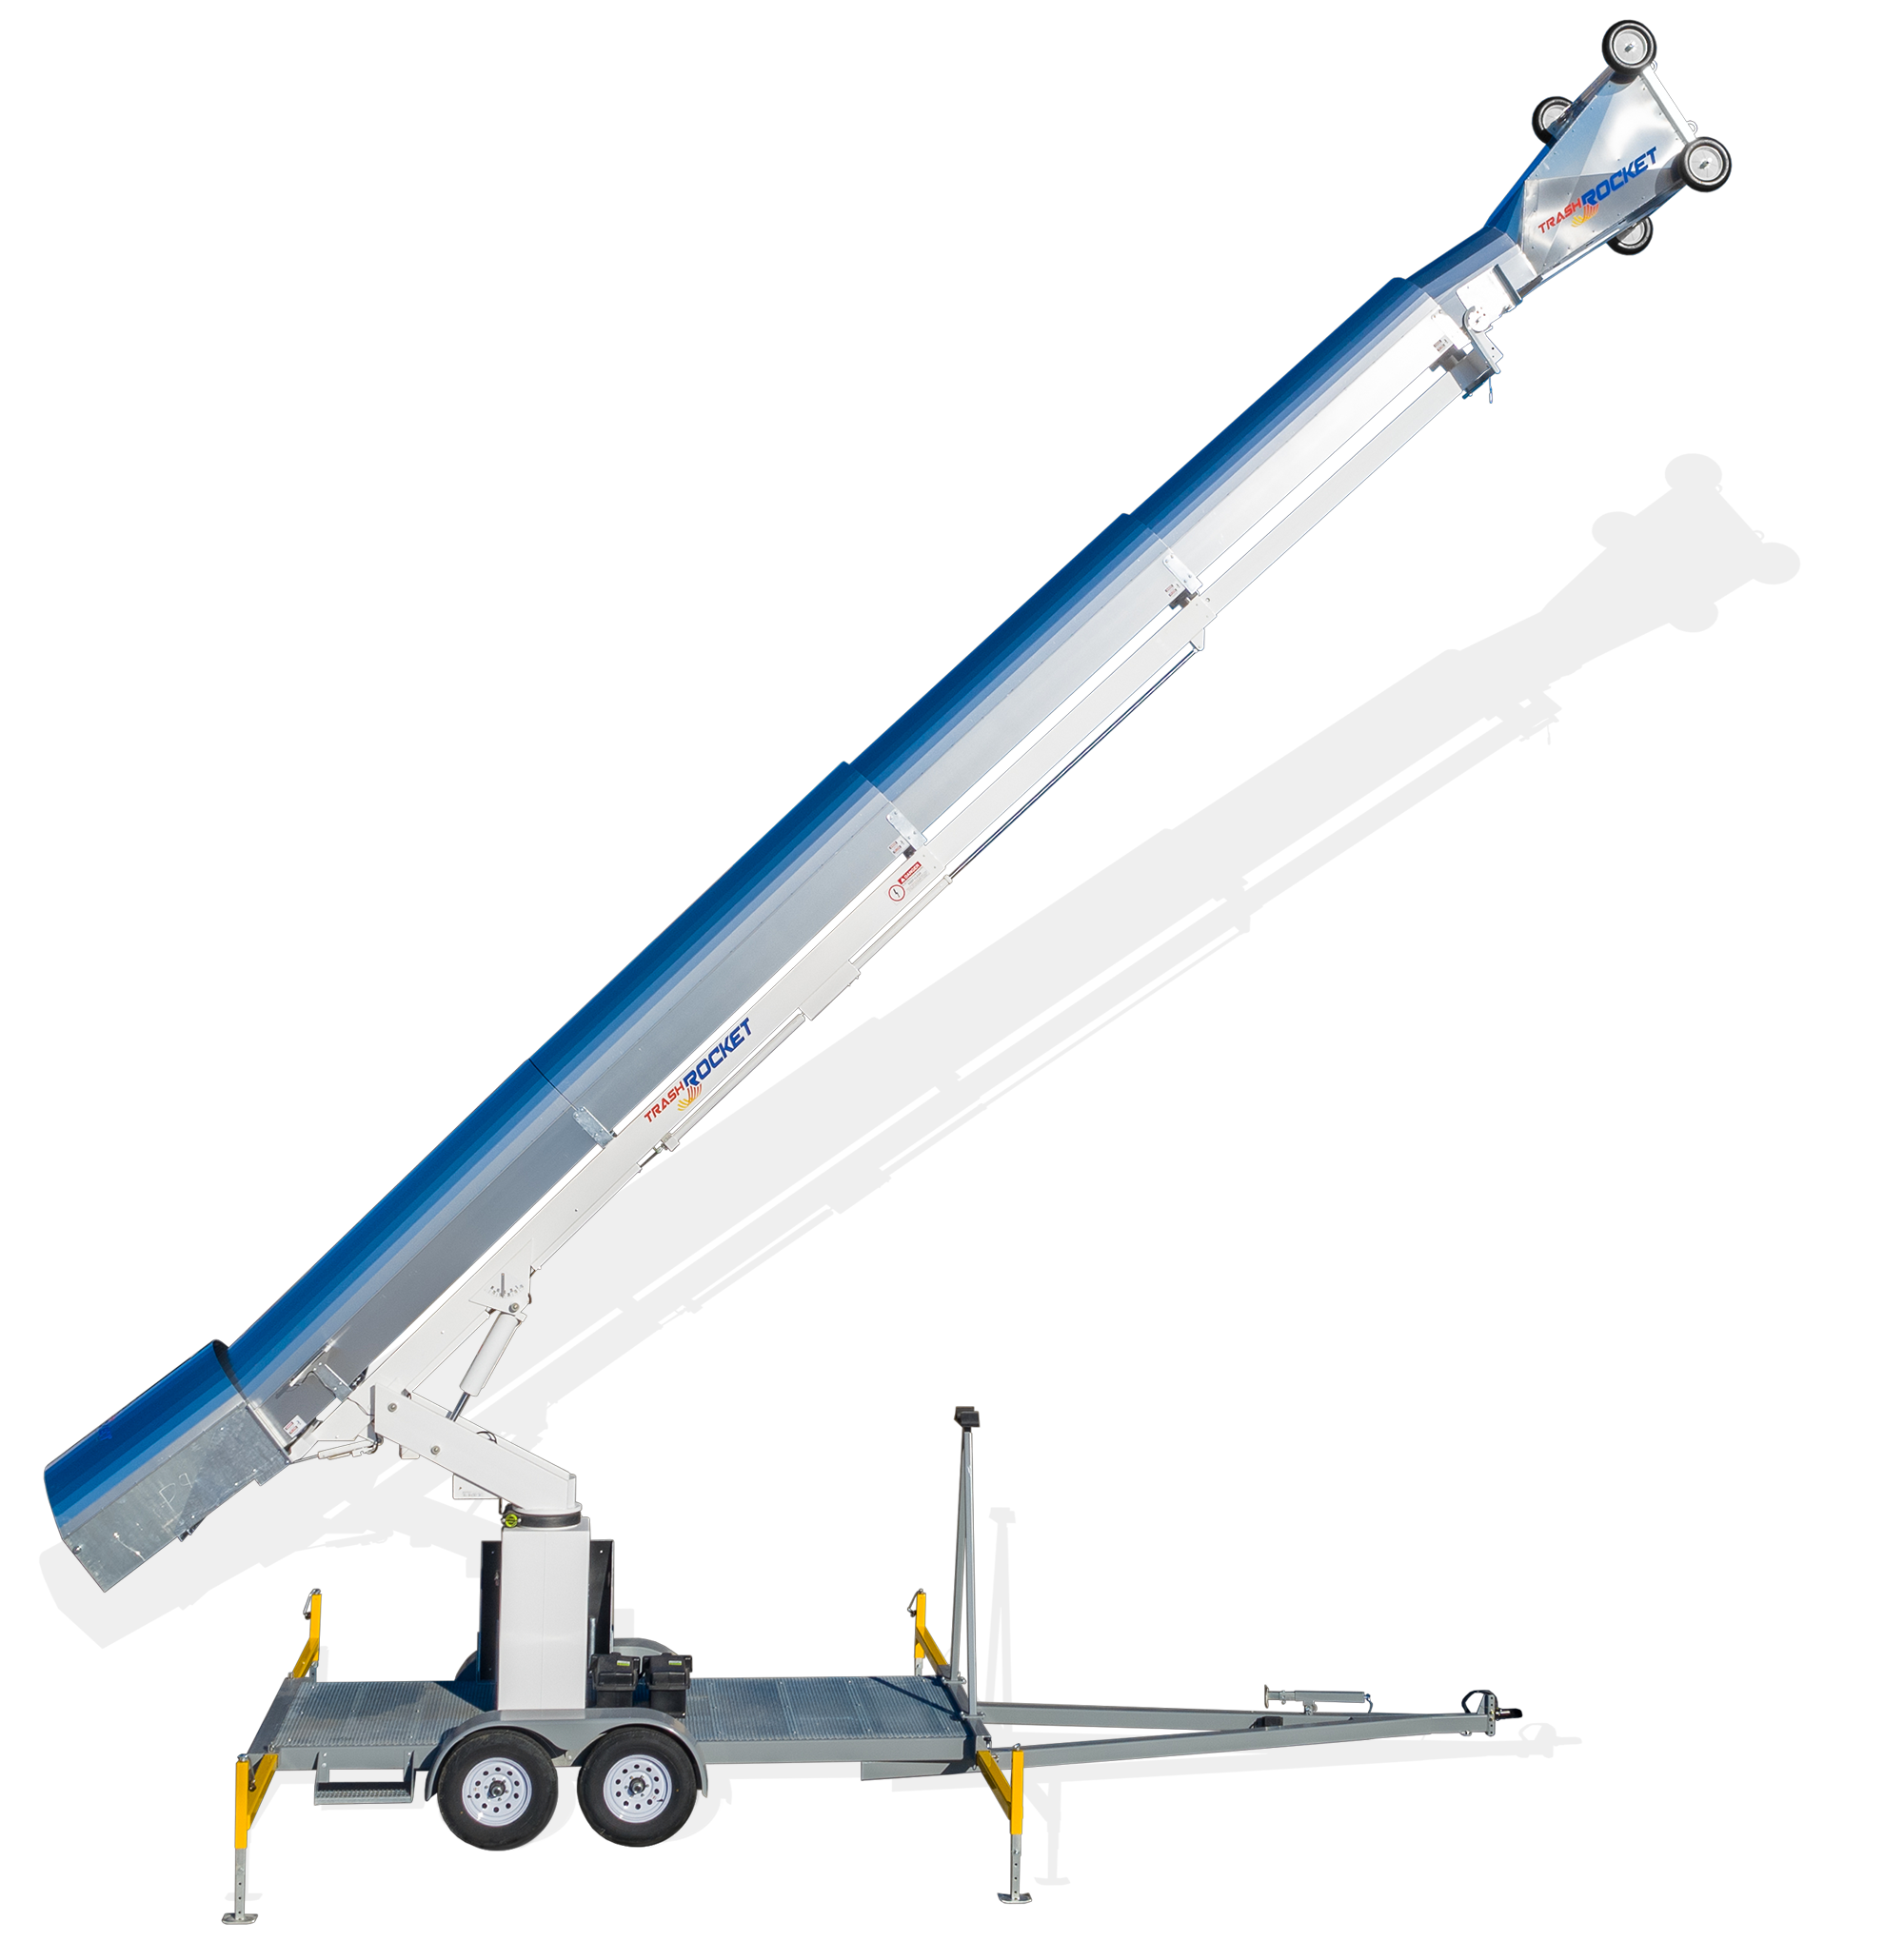 Rocket Equipment's Trash Rocket TR 3900 (Model TR3900) photo in extended position for use in construction as mobile trash chute system